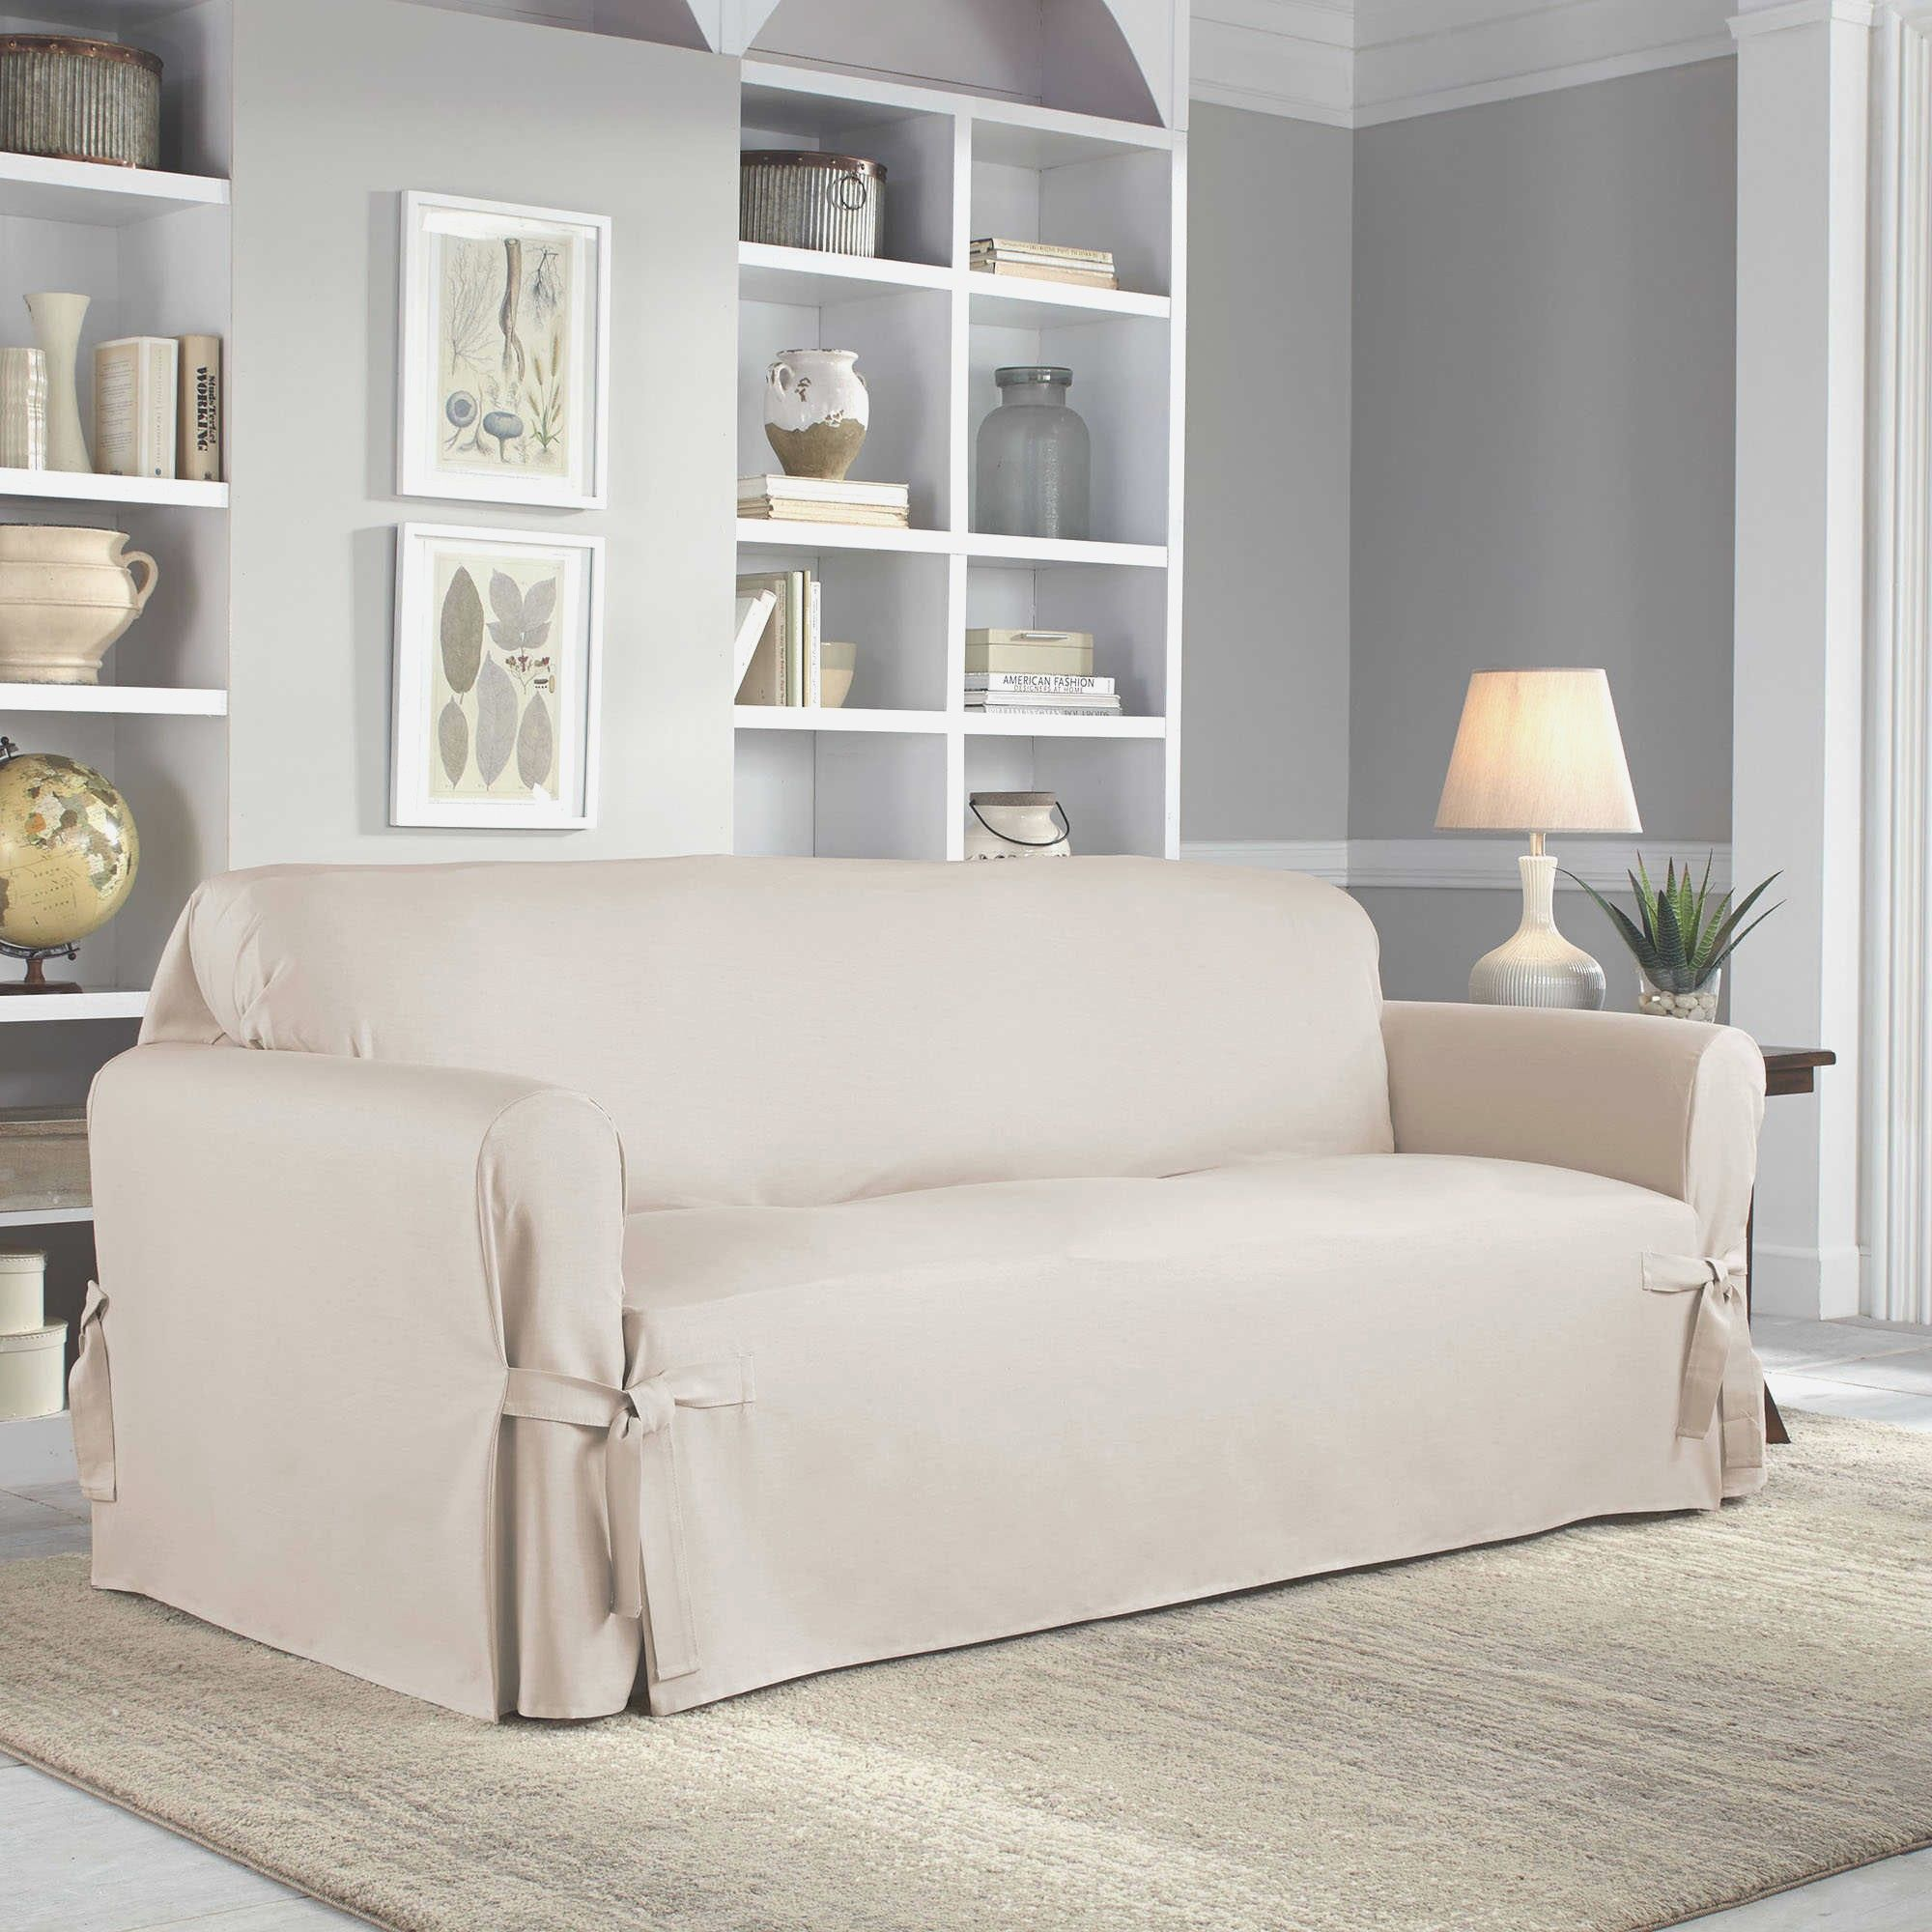 L Shaped Sofa Covers Ikea L Shaped Sofa Bed Cover L Shape Sofa